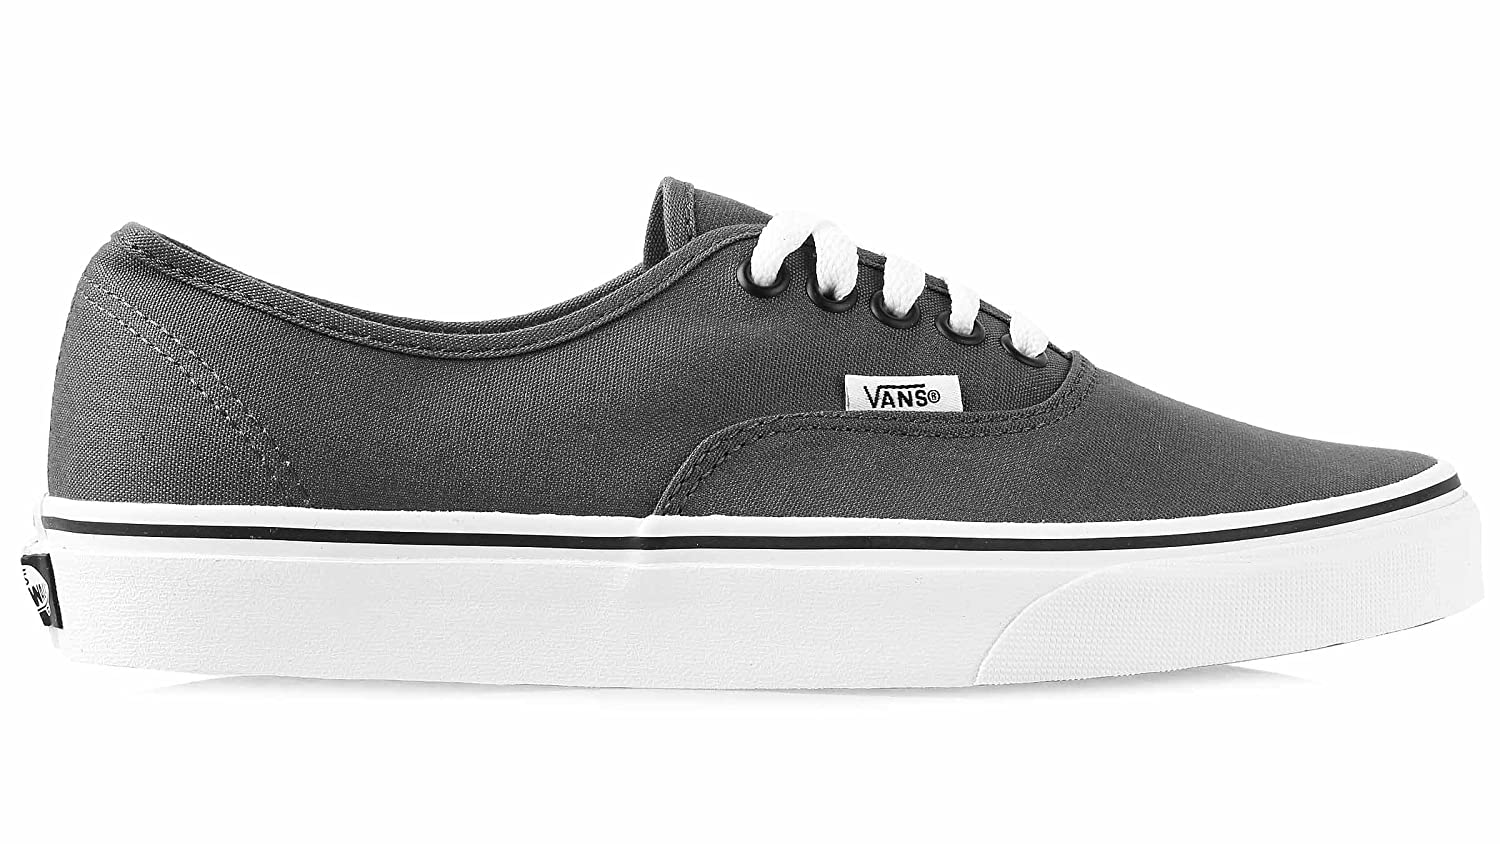 Vans Authentic Unisex Skate Trainers Shoes B01N921FX5 13 B(M) US Women / 11.5 D(M) US Men|Pewter/Black